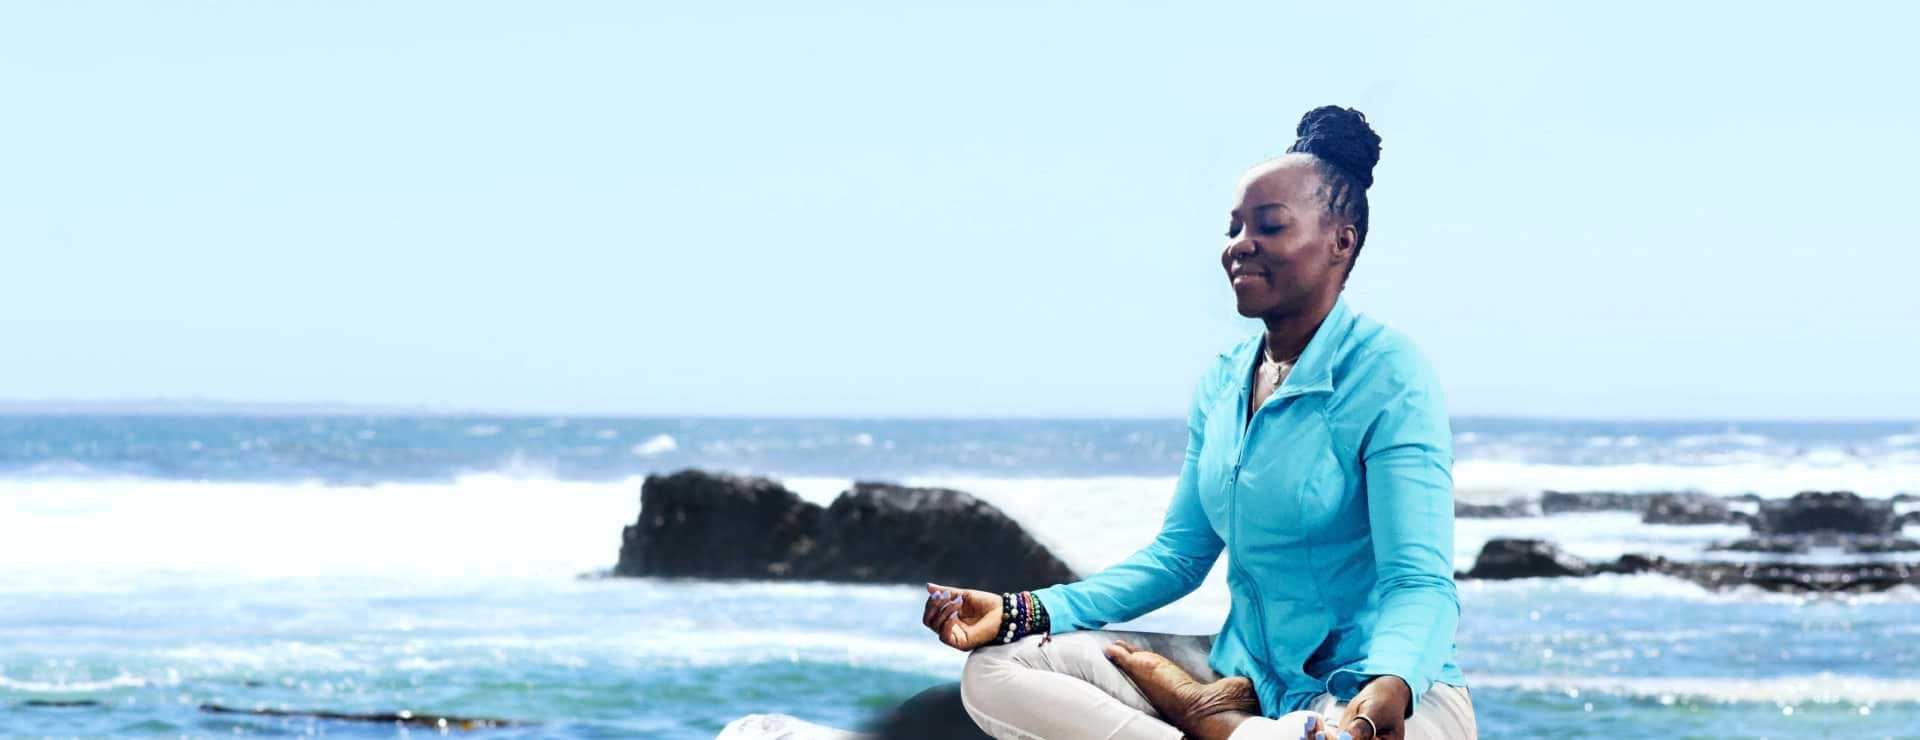 woman is relaxing meditate at the beach while smiling